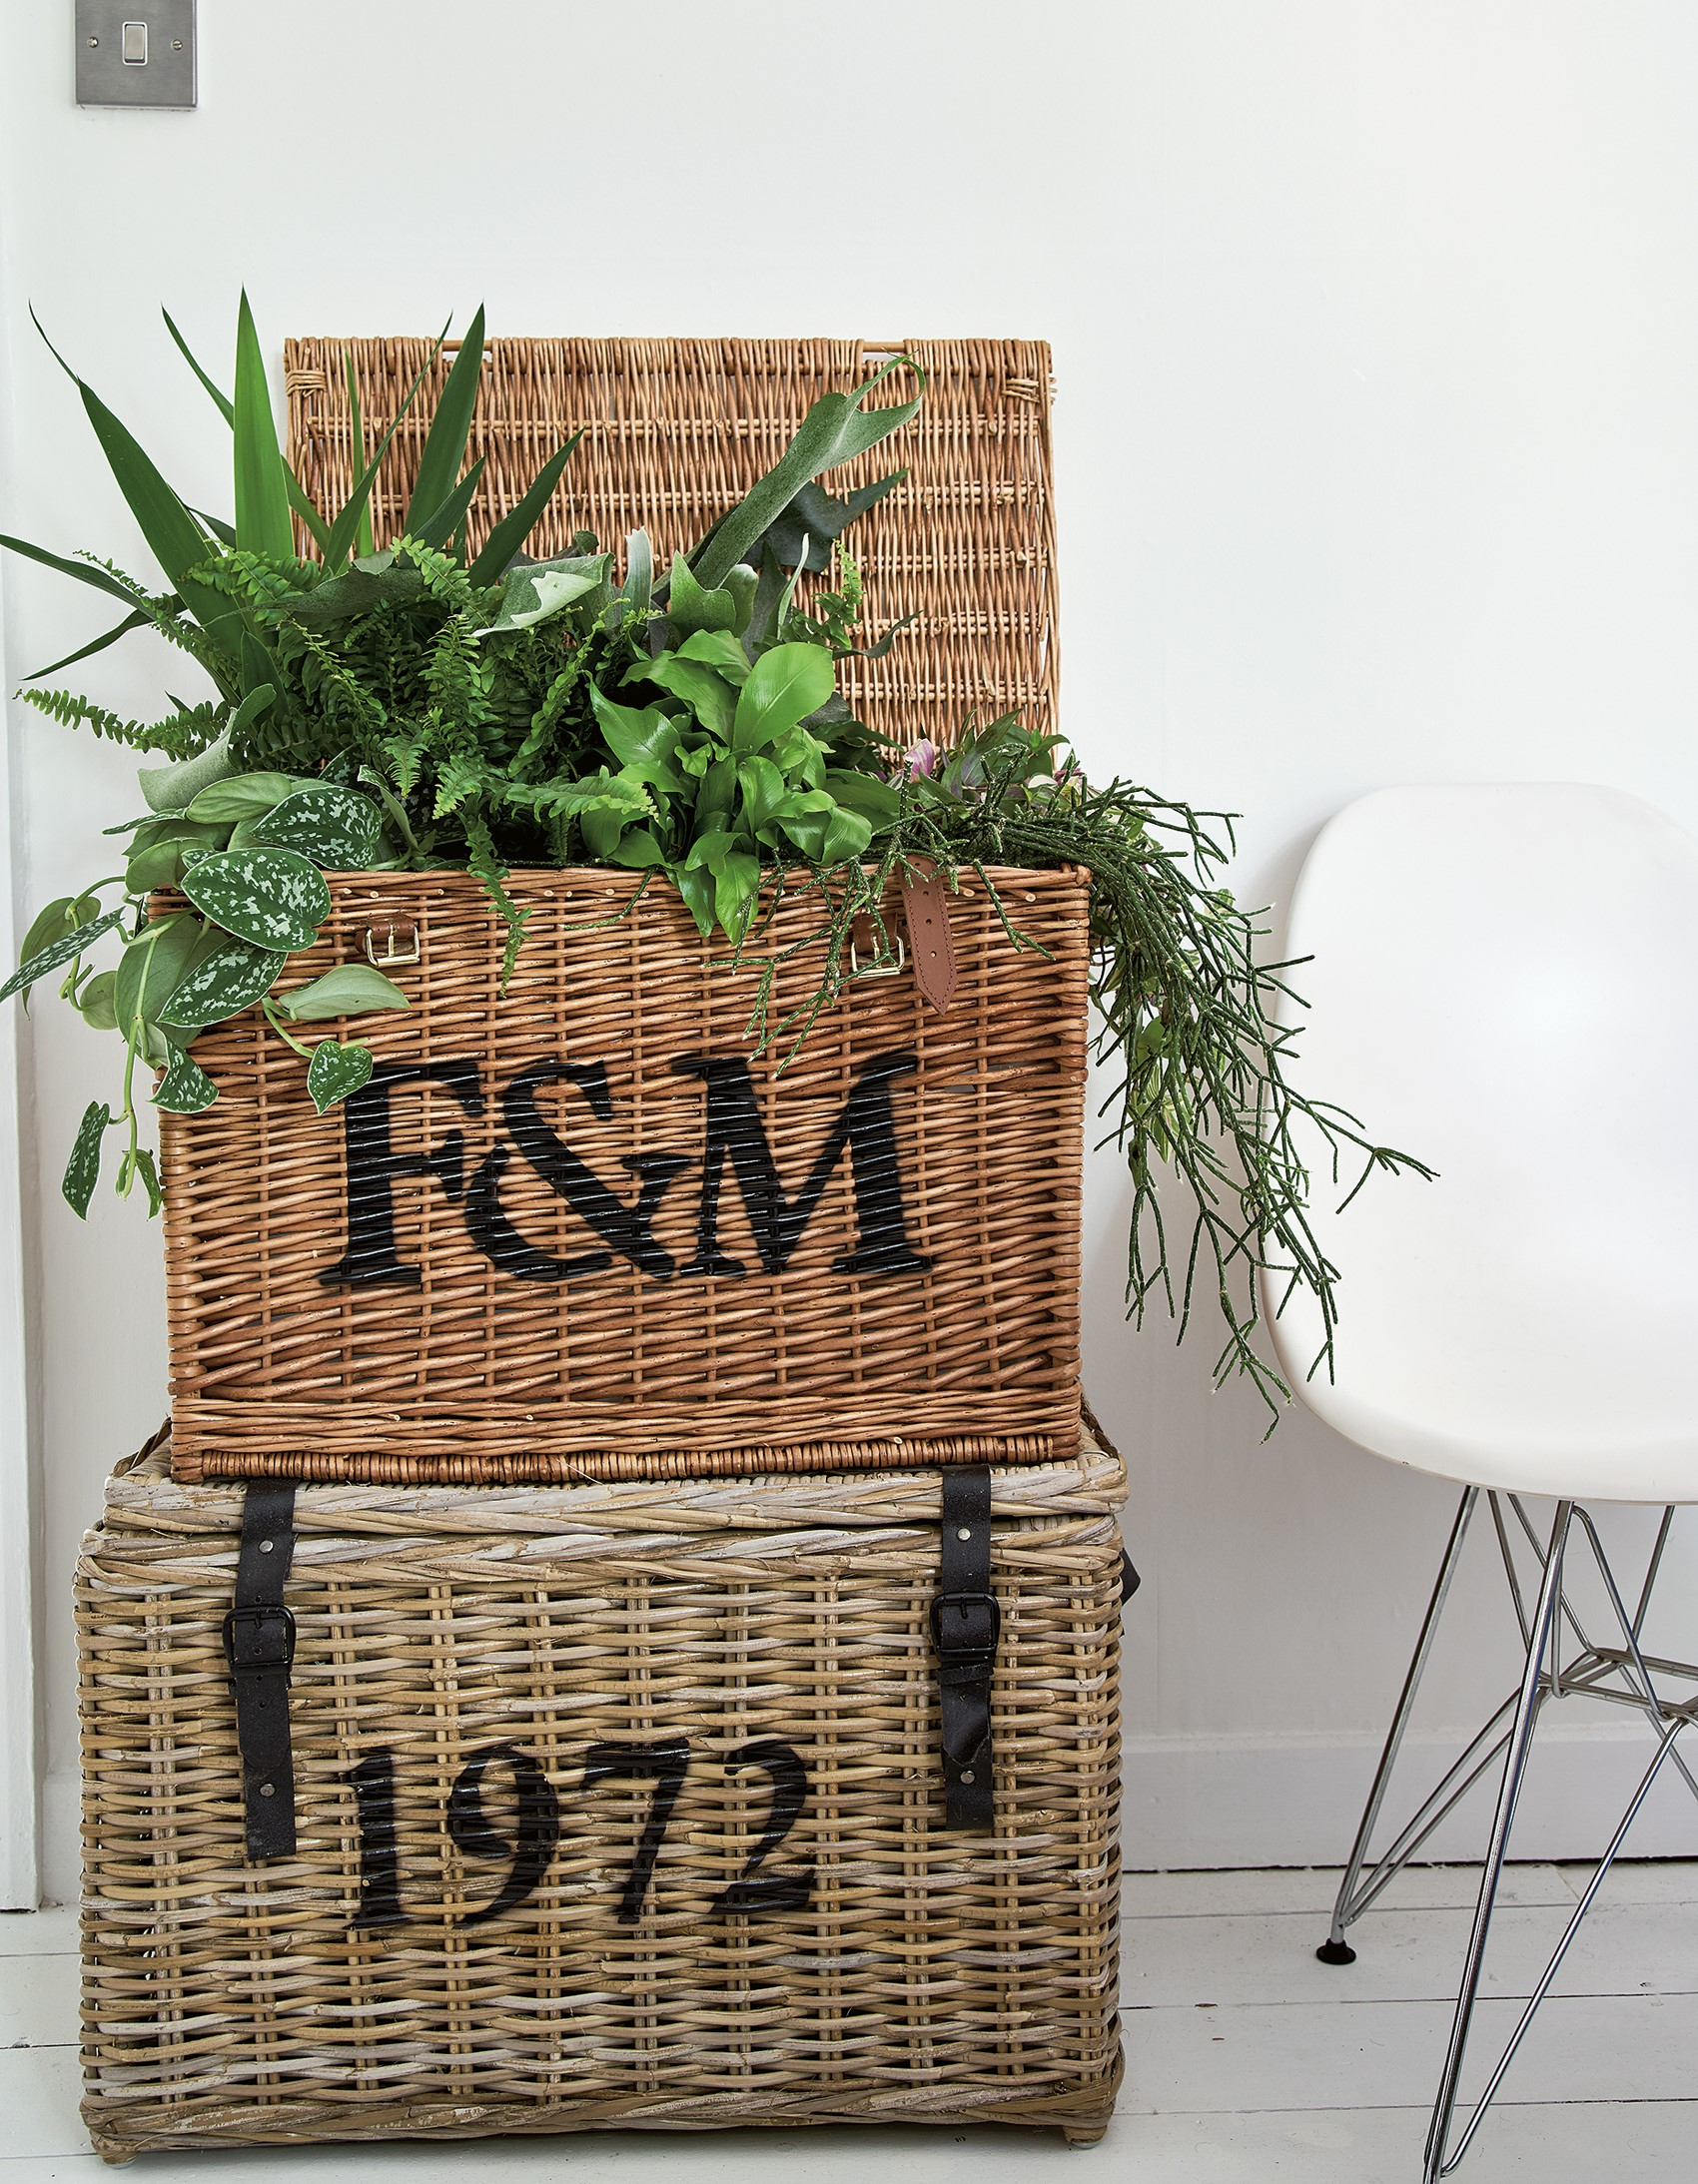 Vintage hampers used to display plants, including a heart-leaf philodrendron; ferns and chain cactus featured in At Home With Plants (Nick Pope/Mitchell Beazley/PA)